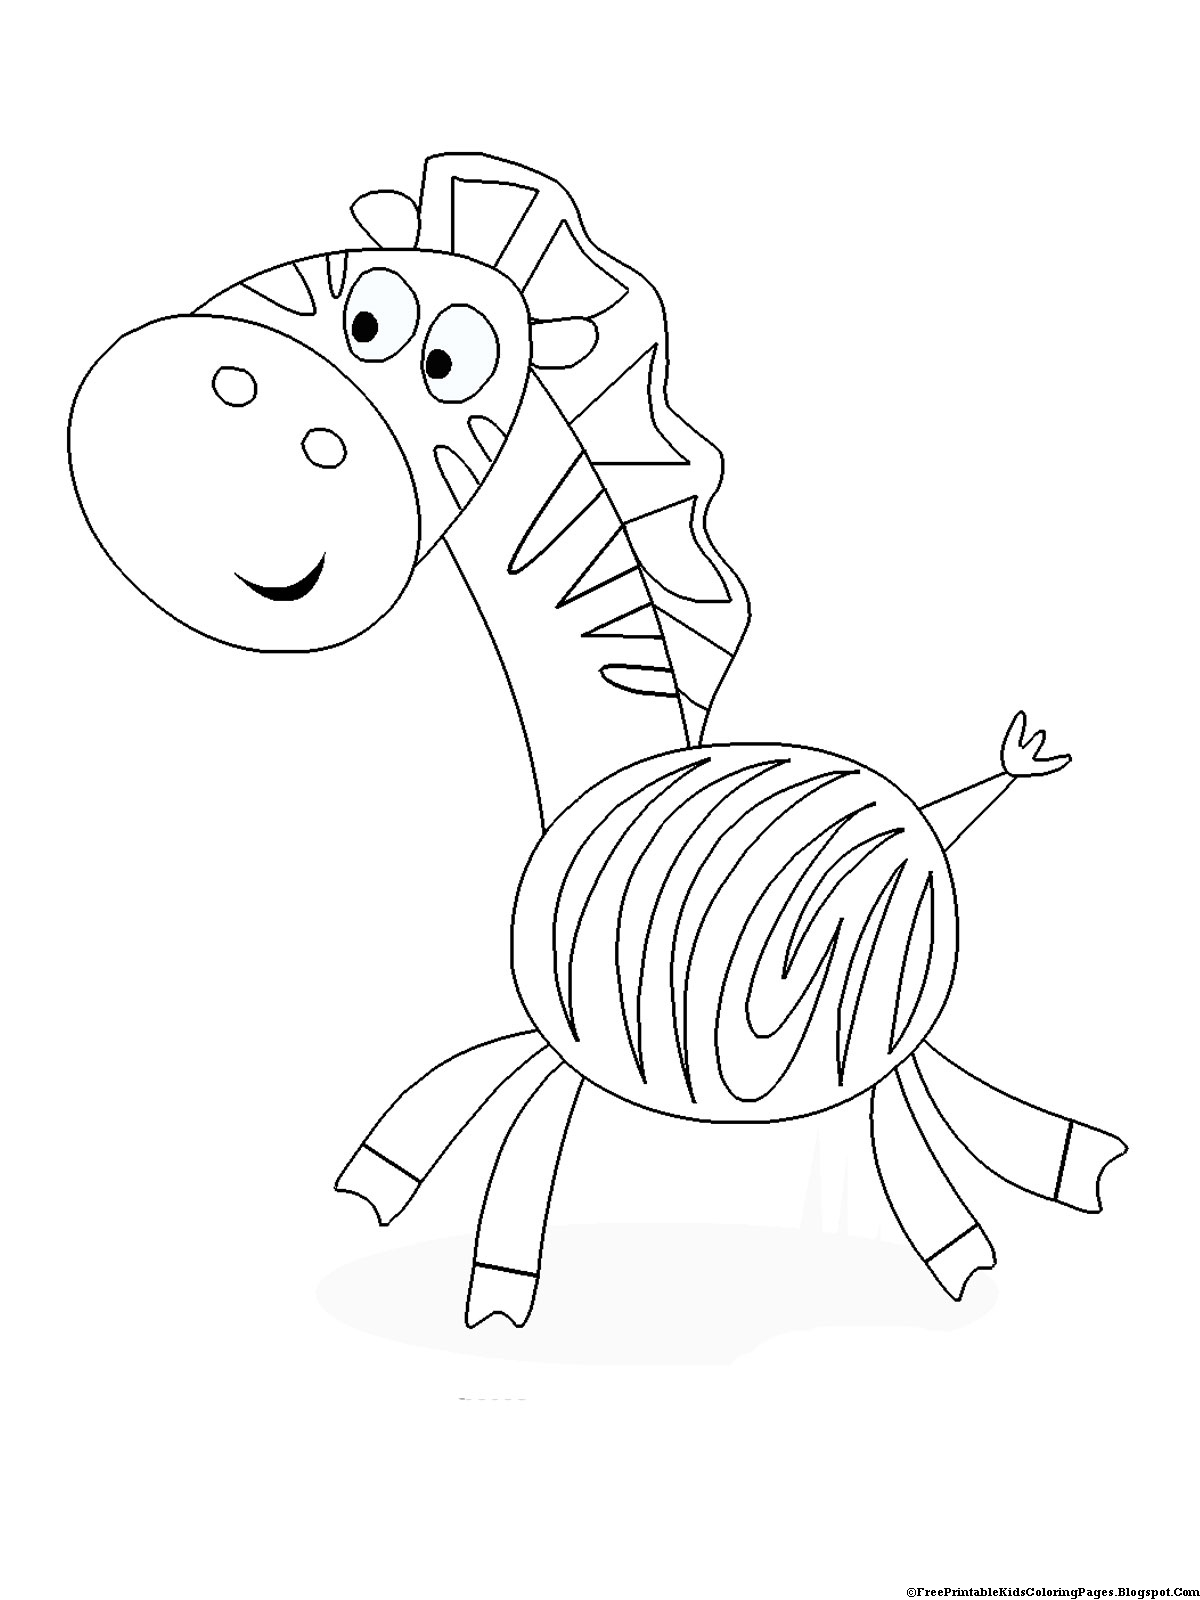 color pages printable donkey coloring pages to download and print for free color printable pages